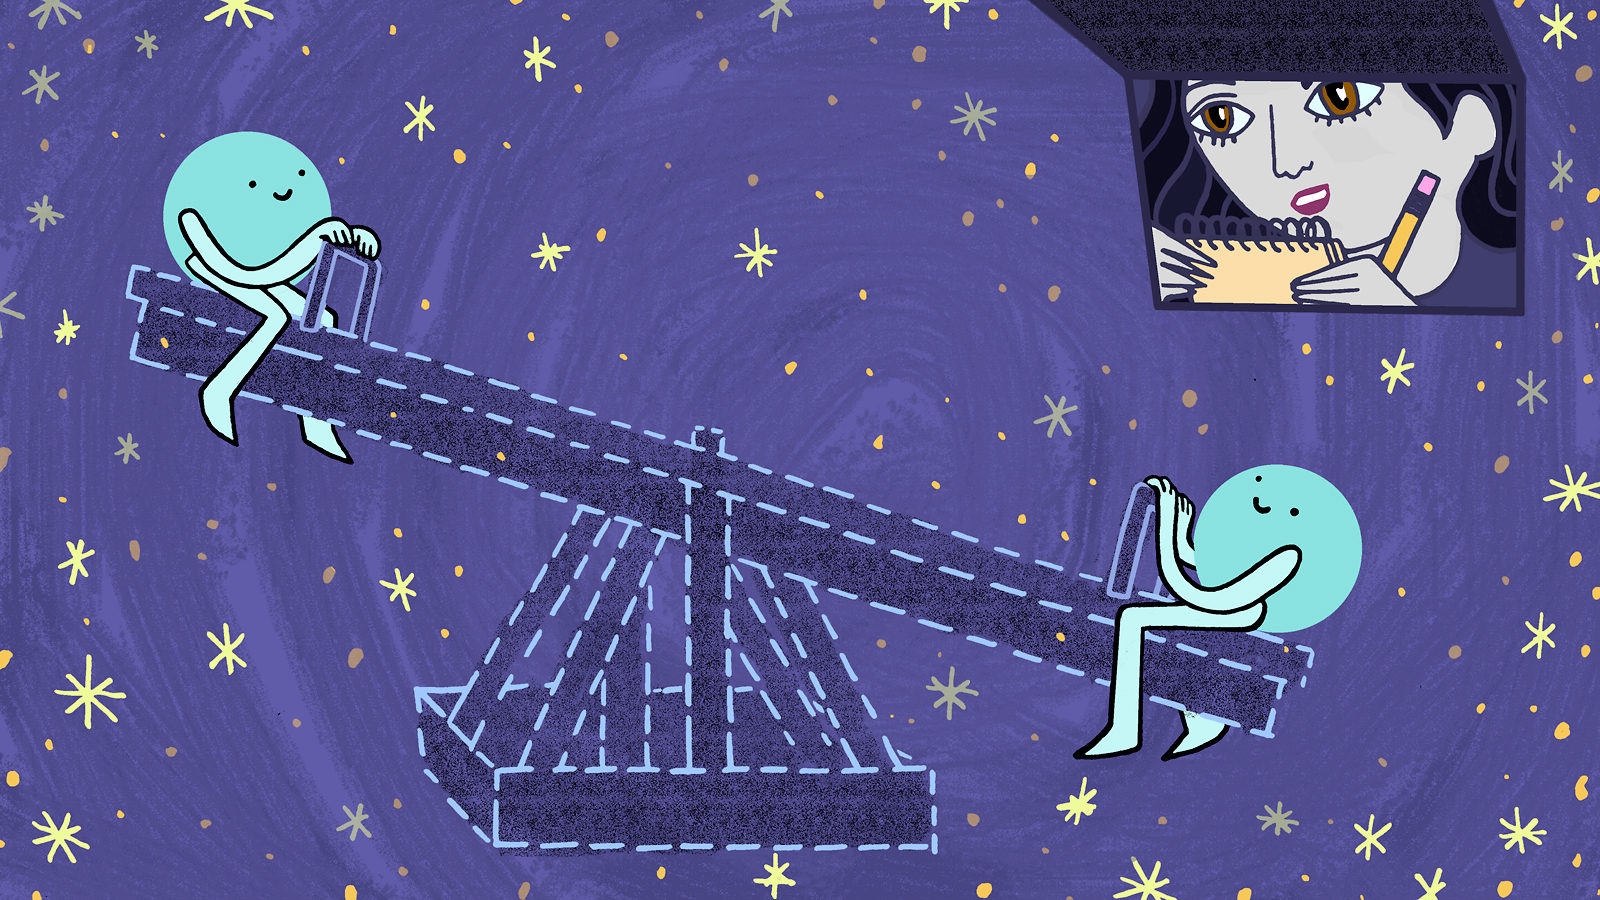 The quest to test quantum entanglement